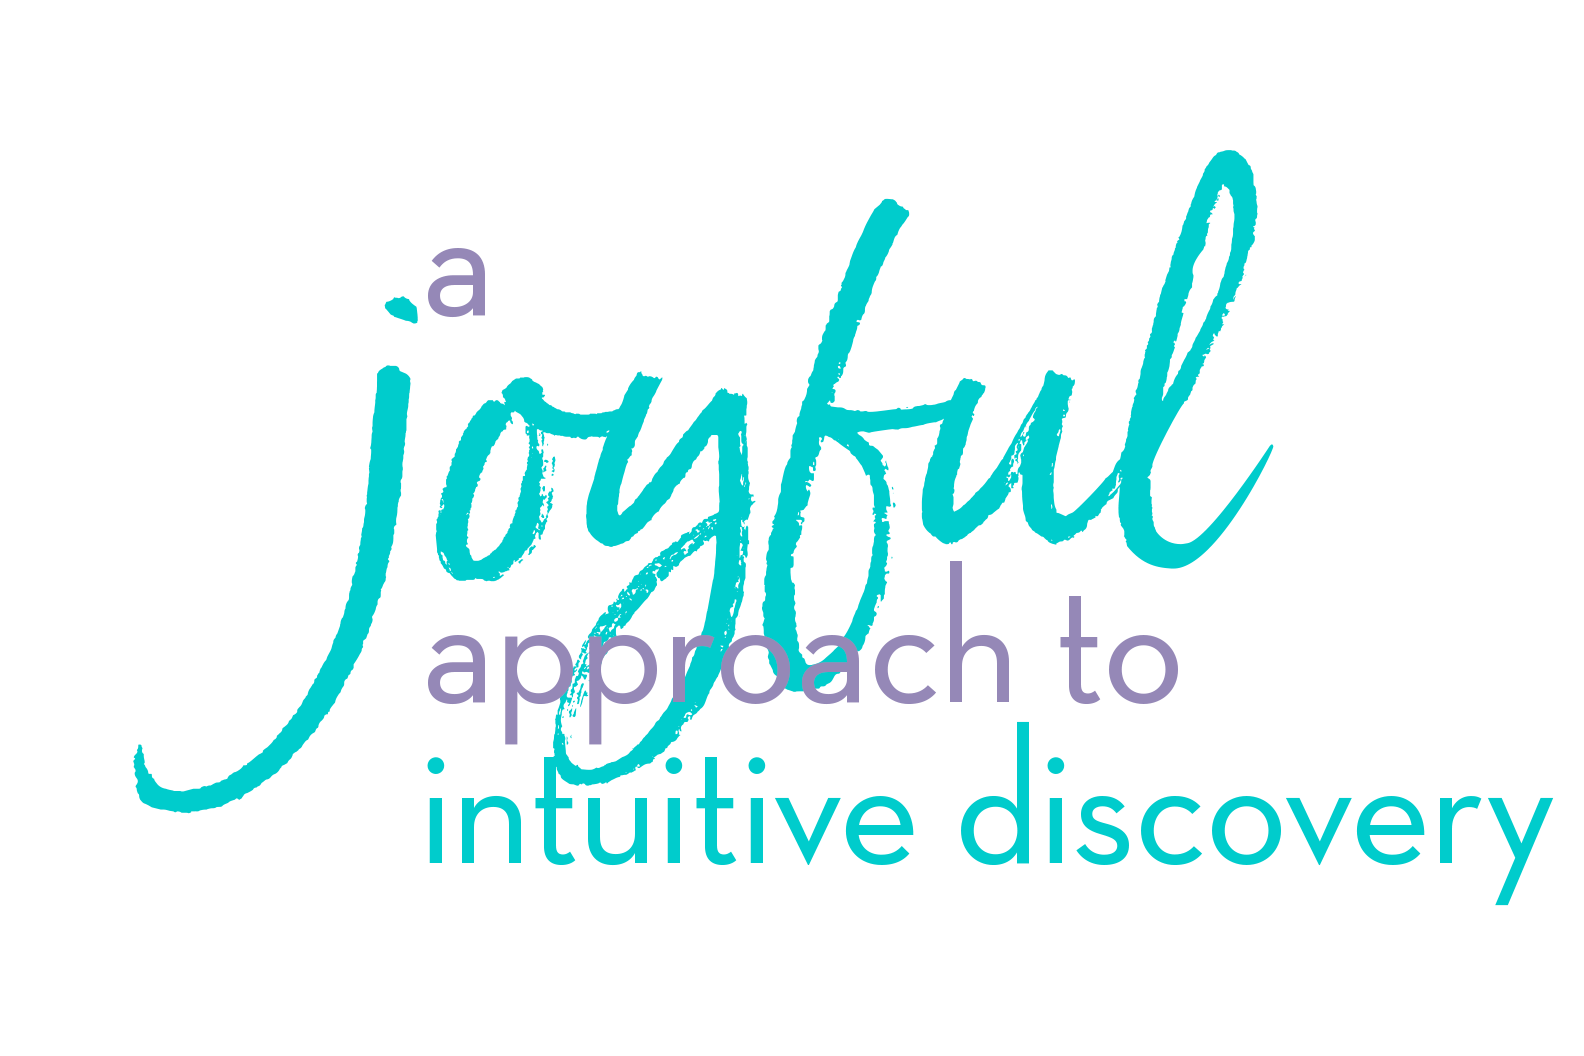 a joyful appraoch to intuitive discovery